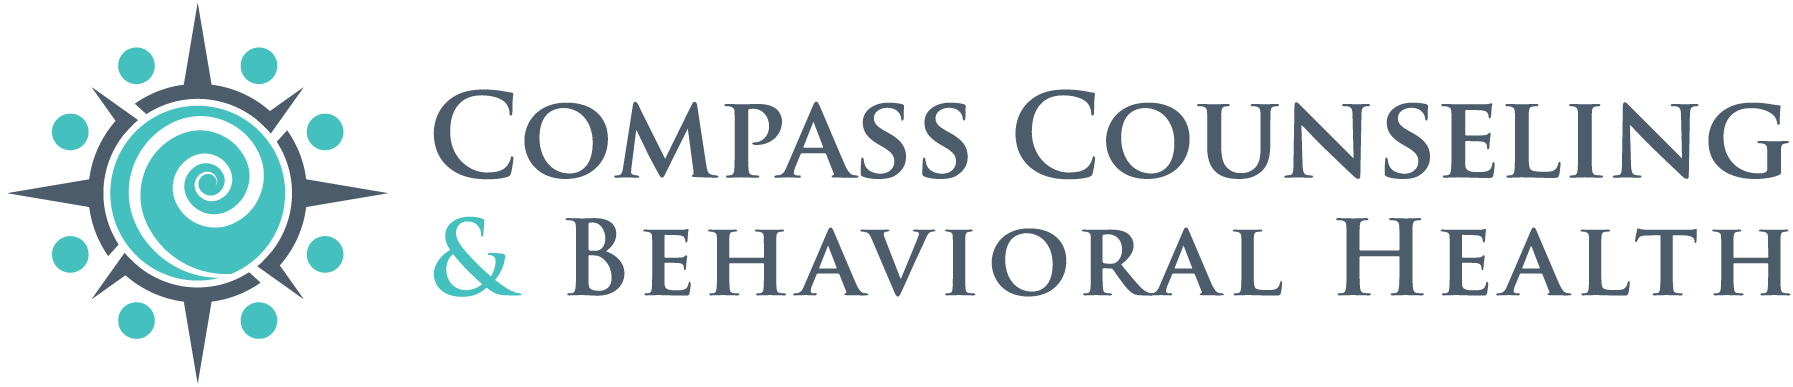 Compass Counseling and Behavioral Health